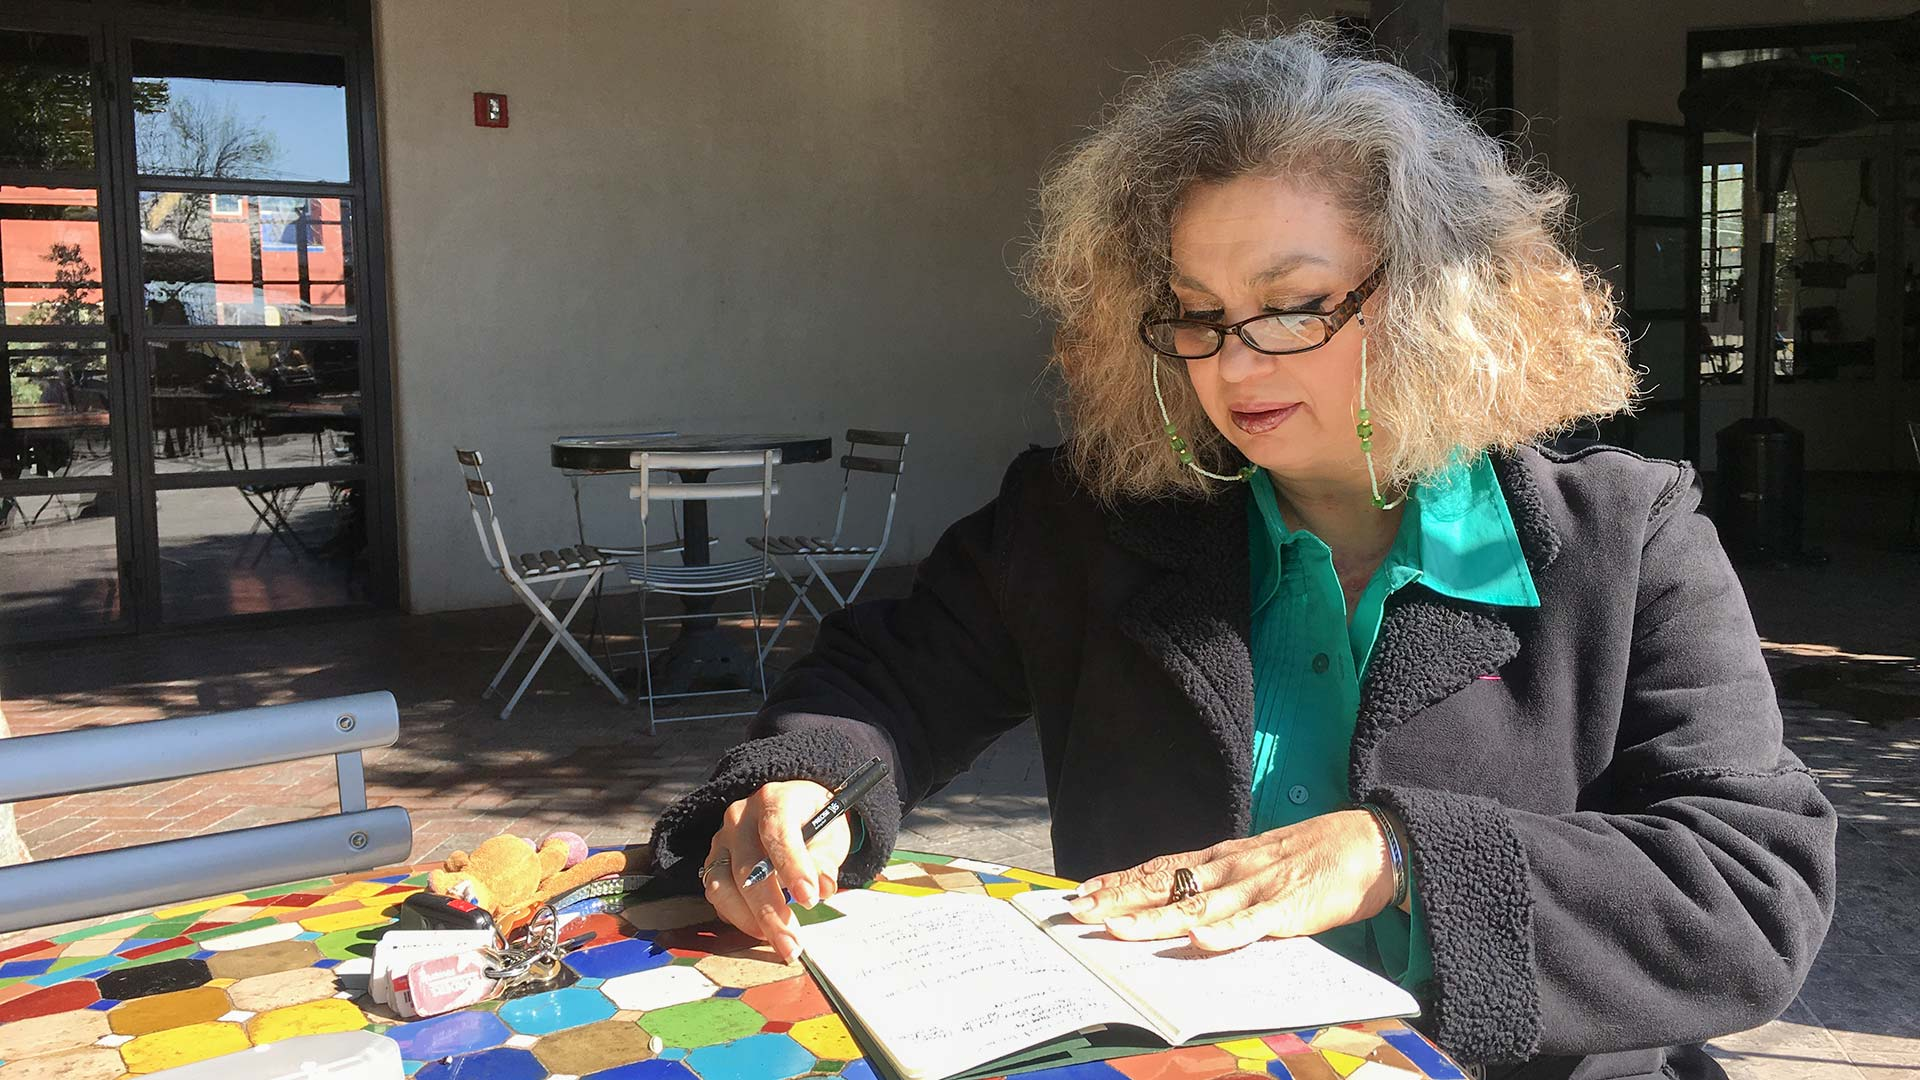 Ana Abril Tolsa, a woman who has lived in Tucson for 19 years without legal status, writes at the Mercado San Agustin on Feb. 22, 2018.